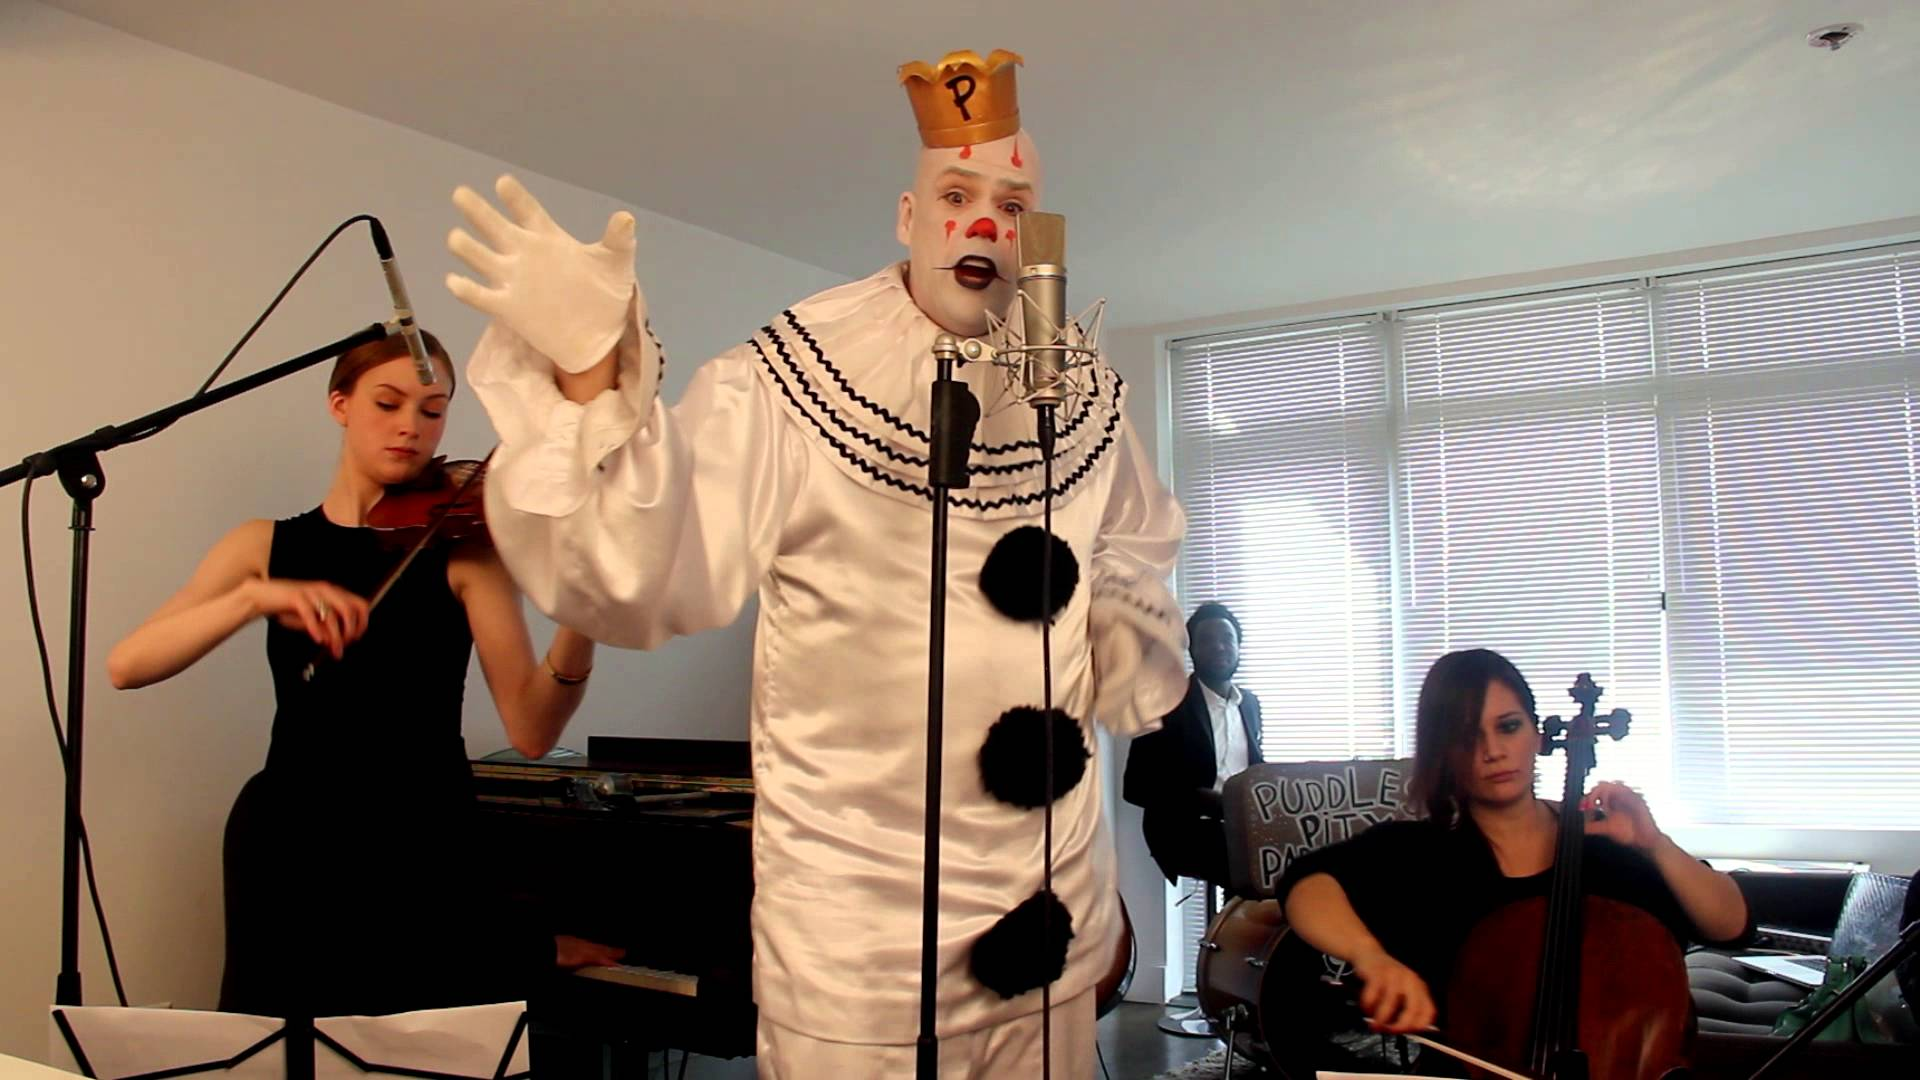 Puddles the sad clown and postmodern jukebox perform the song puddles the sad clown and postmodern jukebox perform the song chandelier by sia arubaitofo Image collections